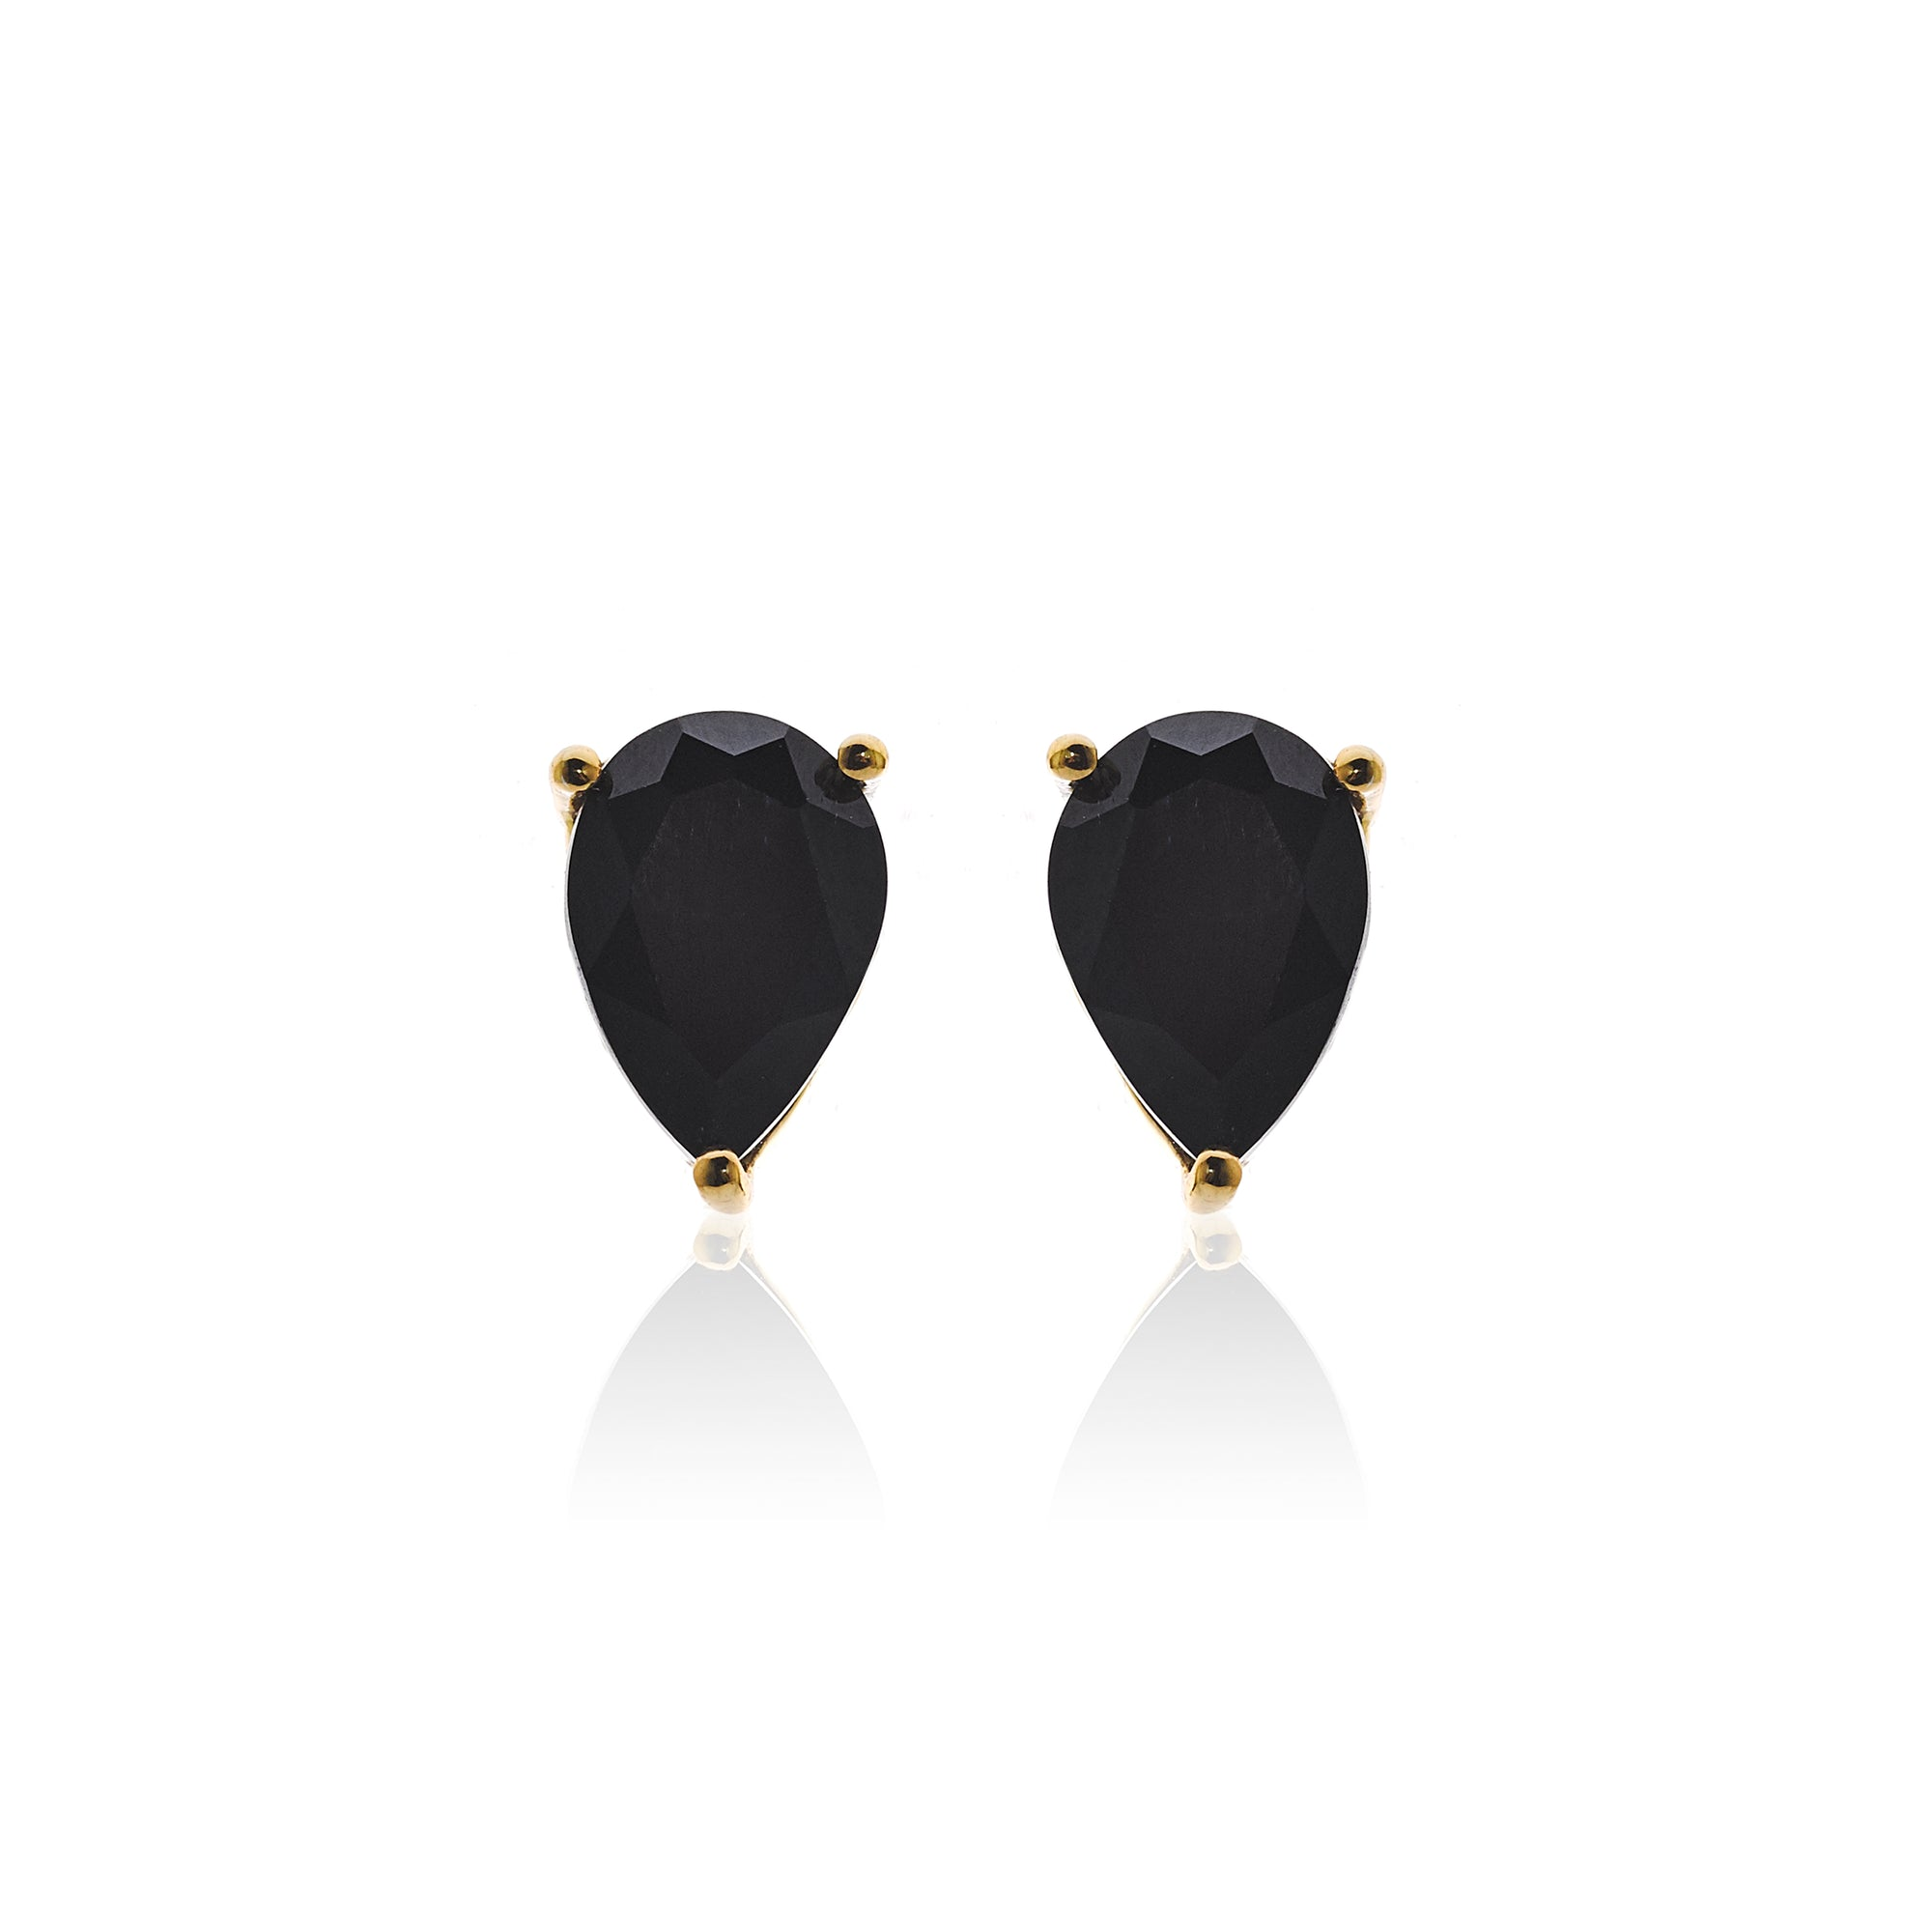 Silk&Steel Jewellery Diva Earrings Black Spinel and Gold From Aria Collection